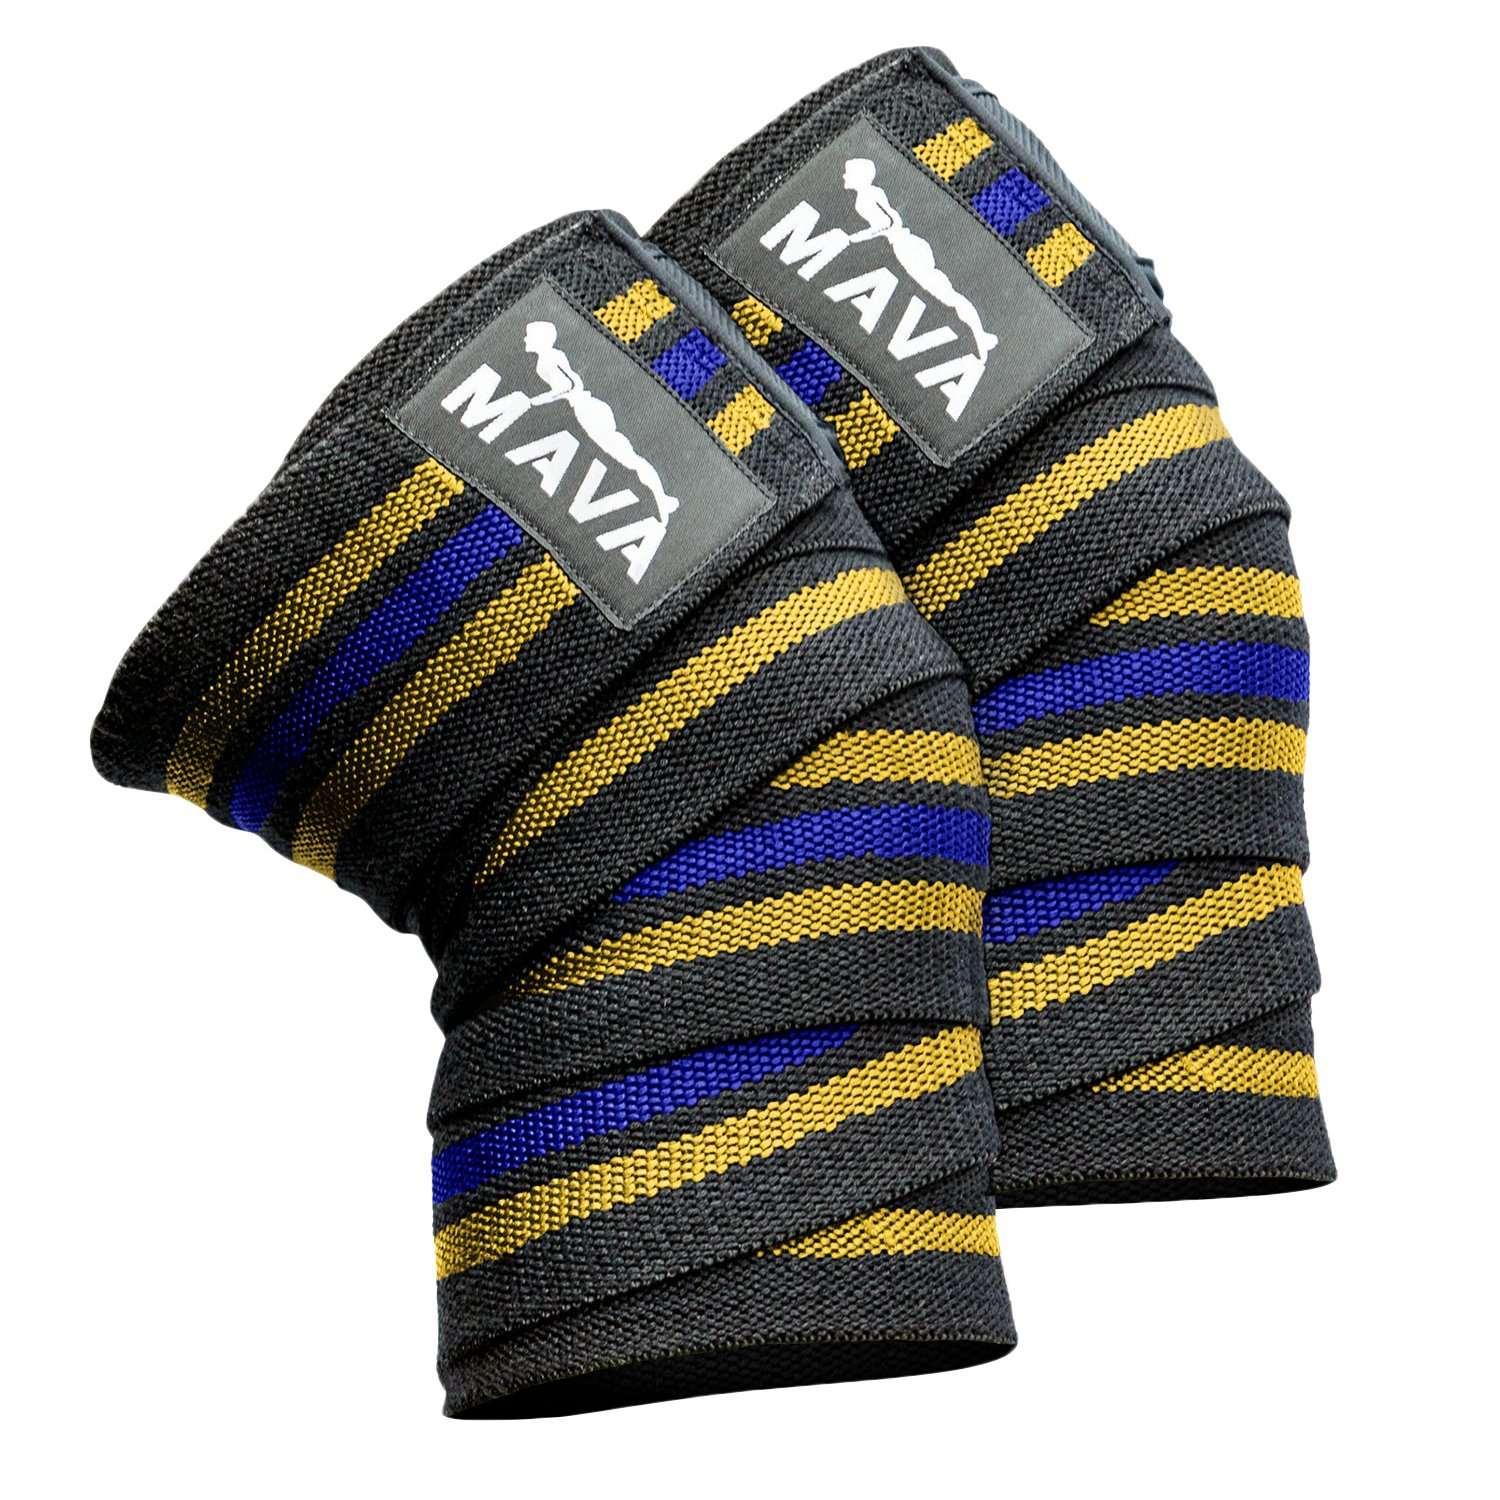 Knee Wraps, Sold as a Pair, Grip to The Skin - Help Support The Recovery Knees During Heavy Lifting or Injury Recovery - Lift Heavier Weights & Support The Knee During Training.